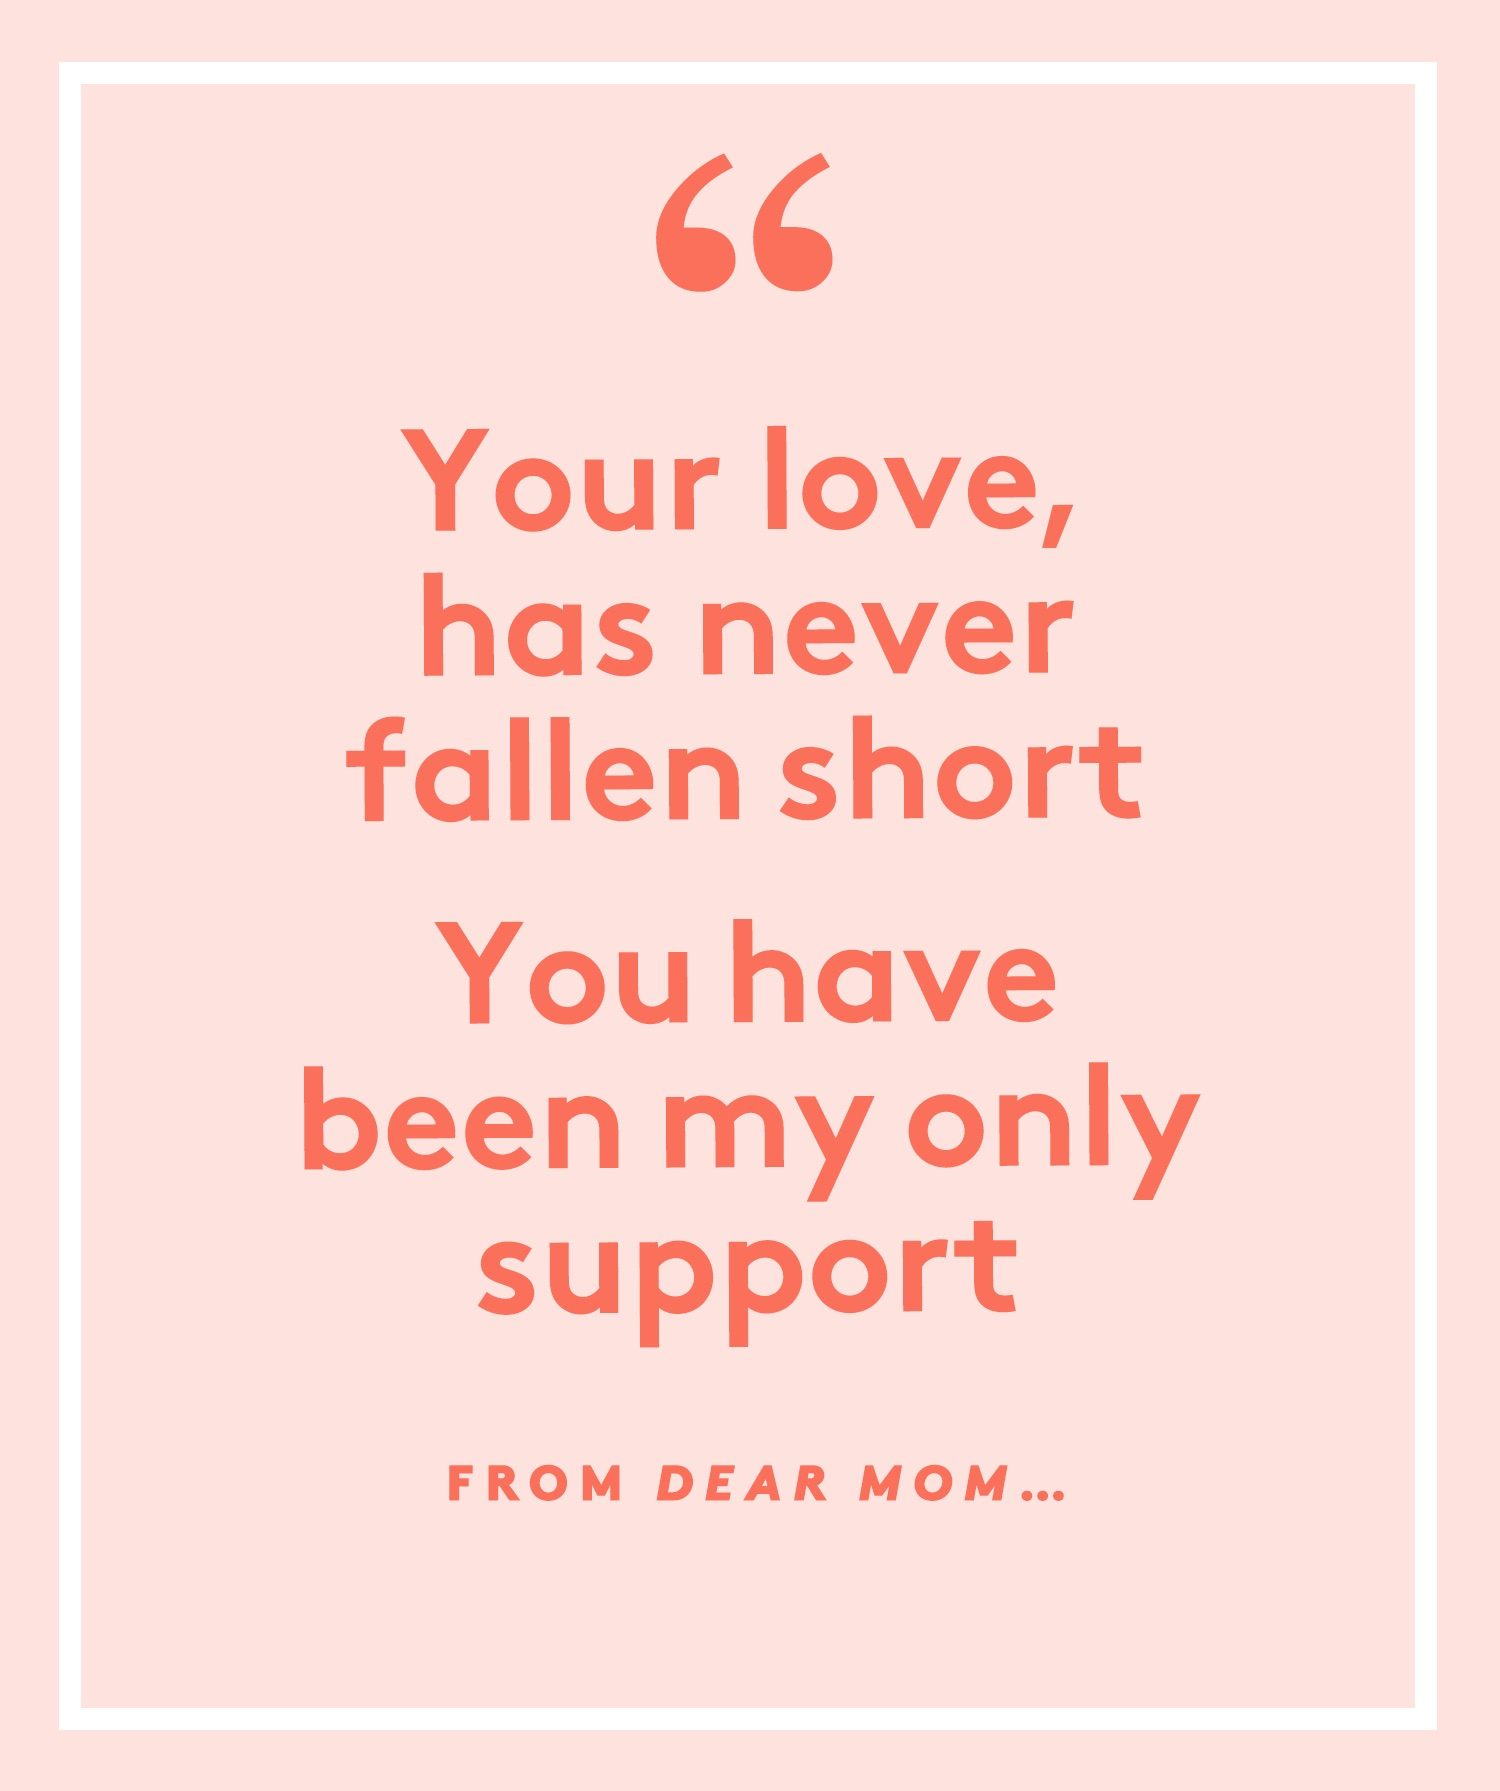 Dear Mom Poem